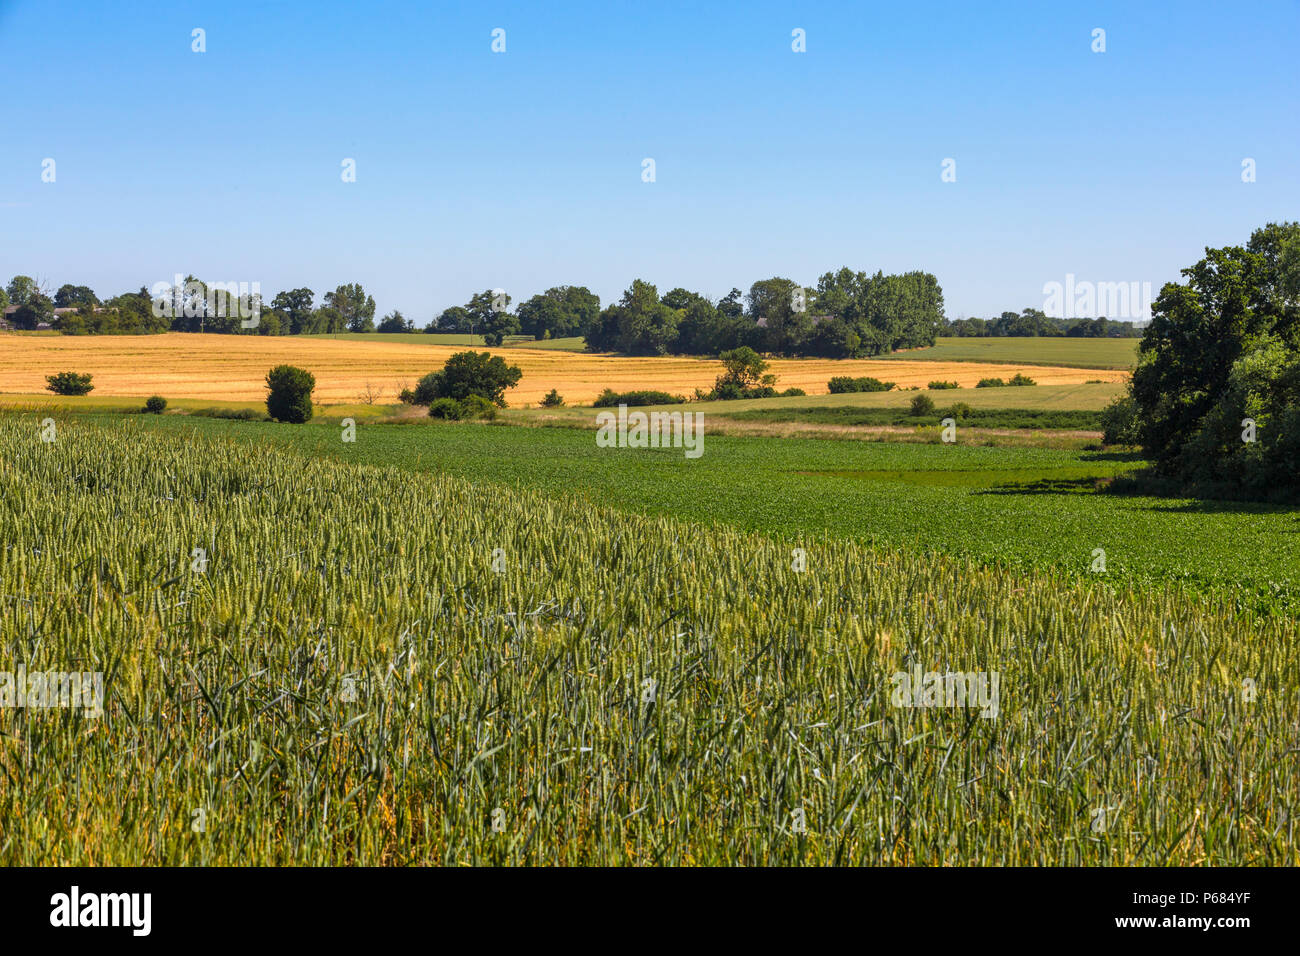 Mixed arable crops. Foreground - wheat, middle - sugar beet, yellow field -barley and 2 upper right fields more wheat. Hoxne, Suffolk, UK. Stock Photo